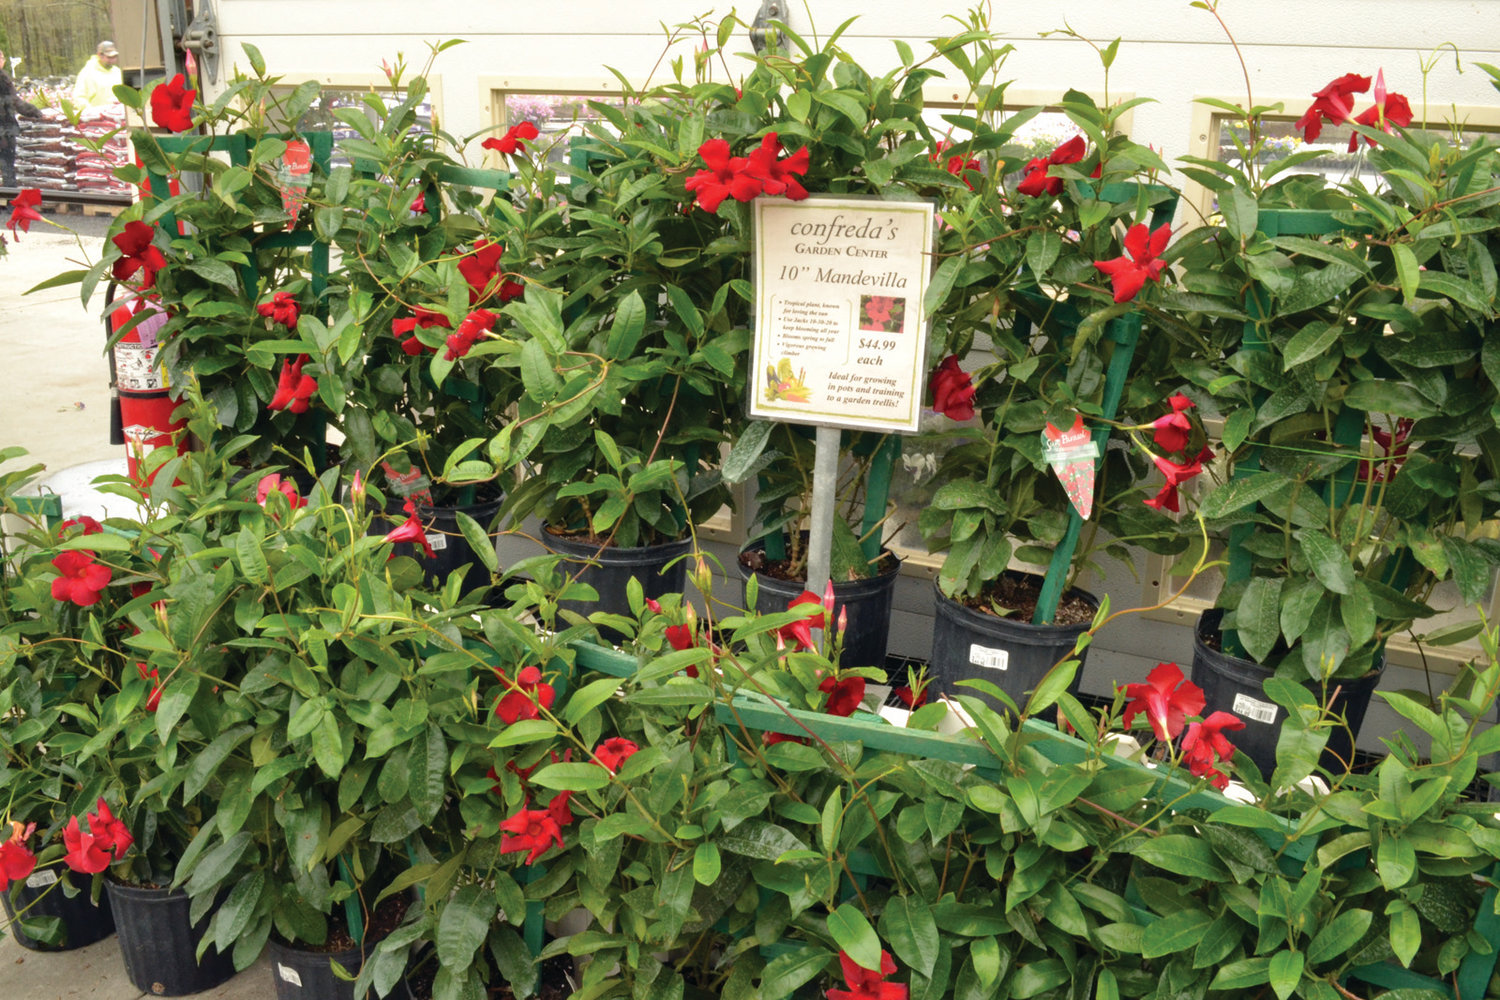 BESTSELLER: Confreda said the mandevilla is one of many popular exotic plants in his greenhouse.